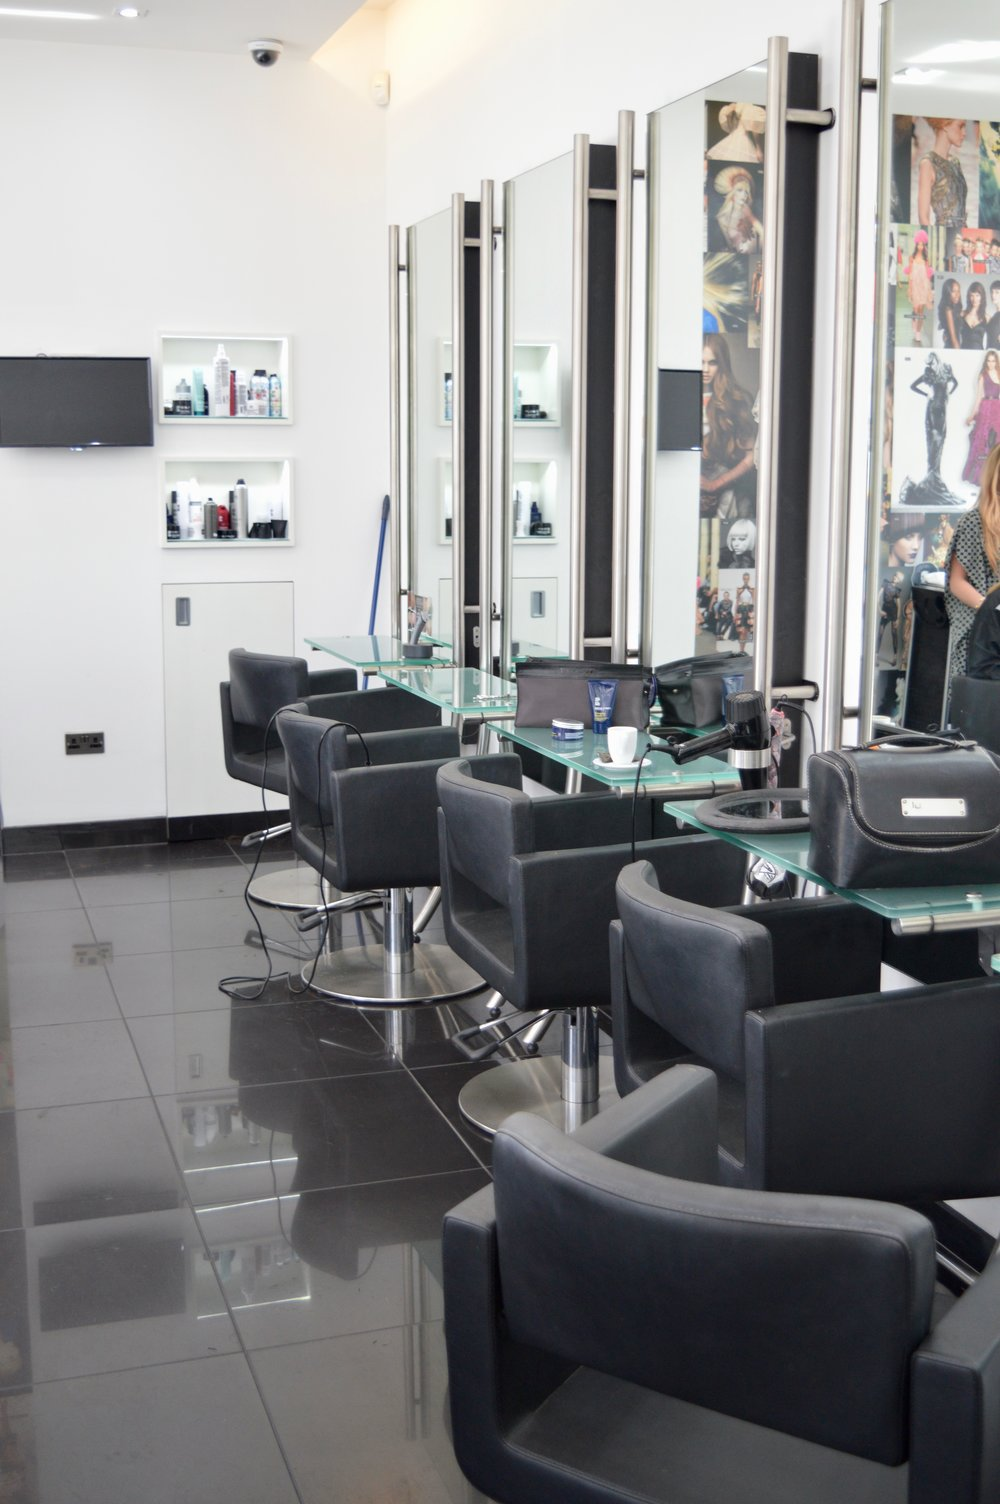 toni-and-guy-newcastle-ridley-place-hairdressers-in-newcastle-elle-blonde-luxury-lifestyle-blog-2